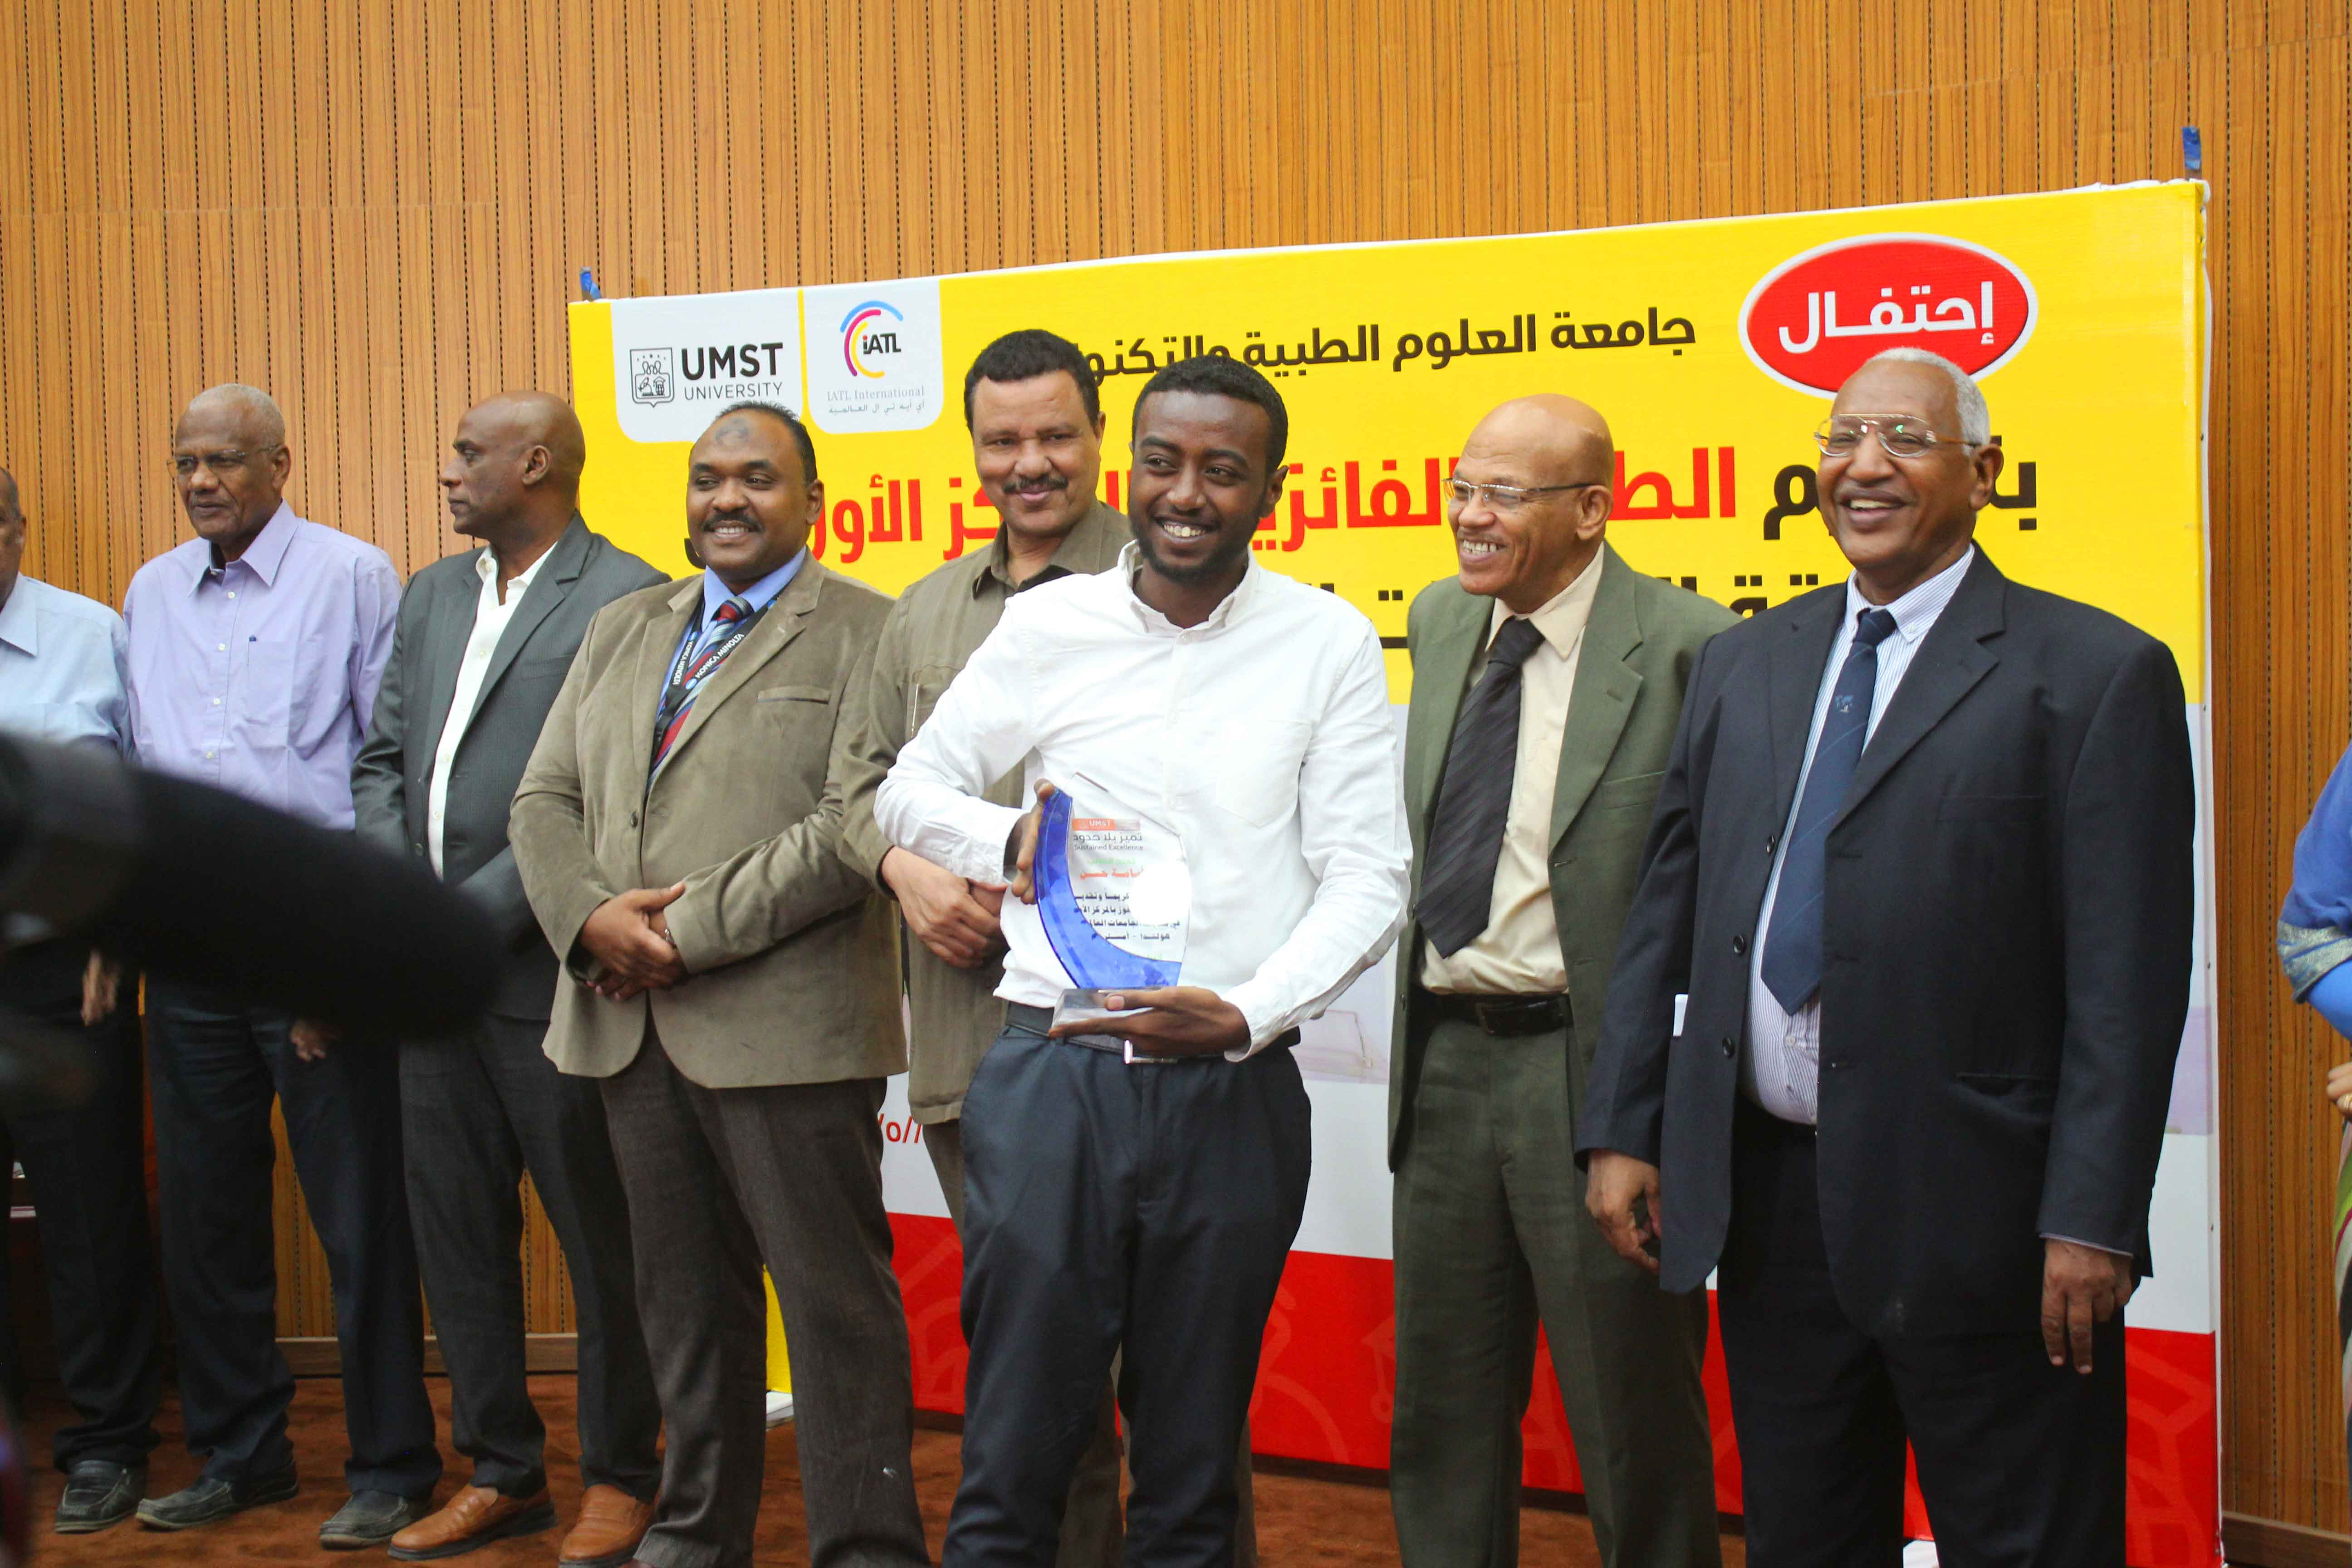 University honored its knights who won the International University Contest